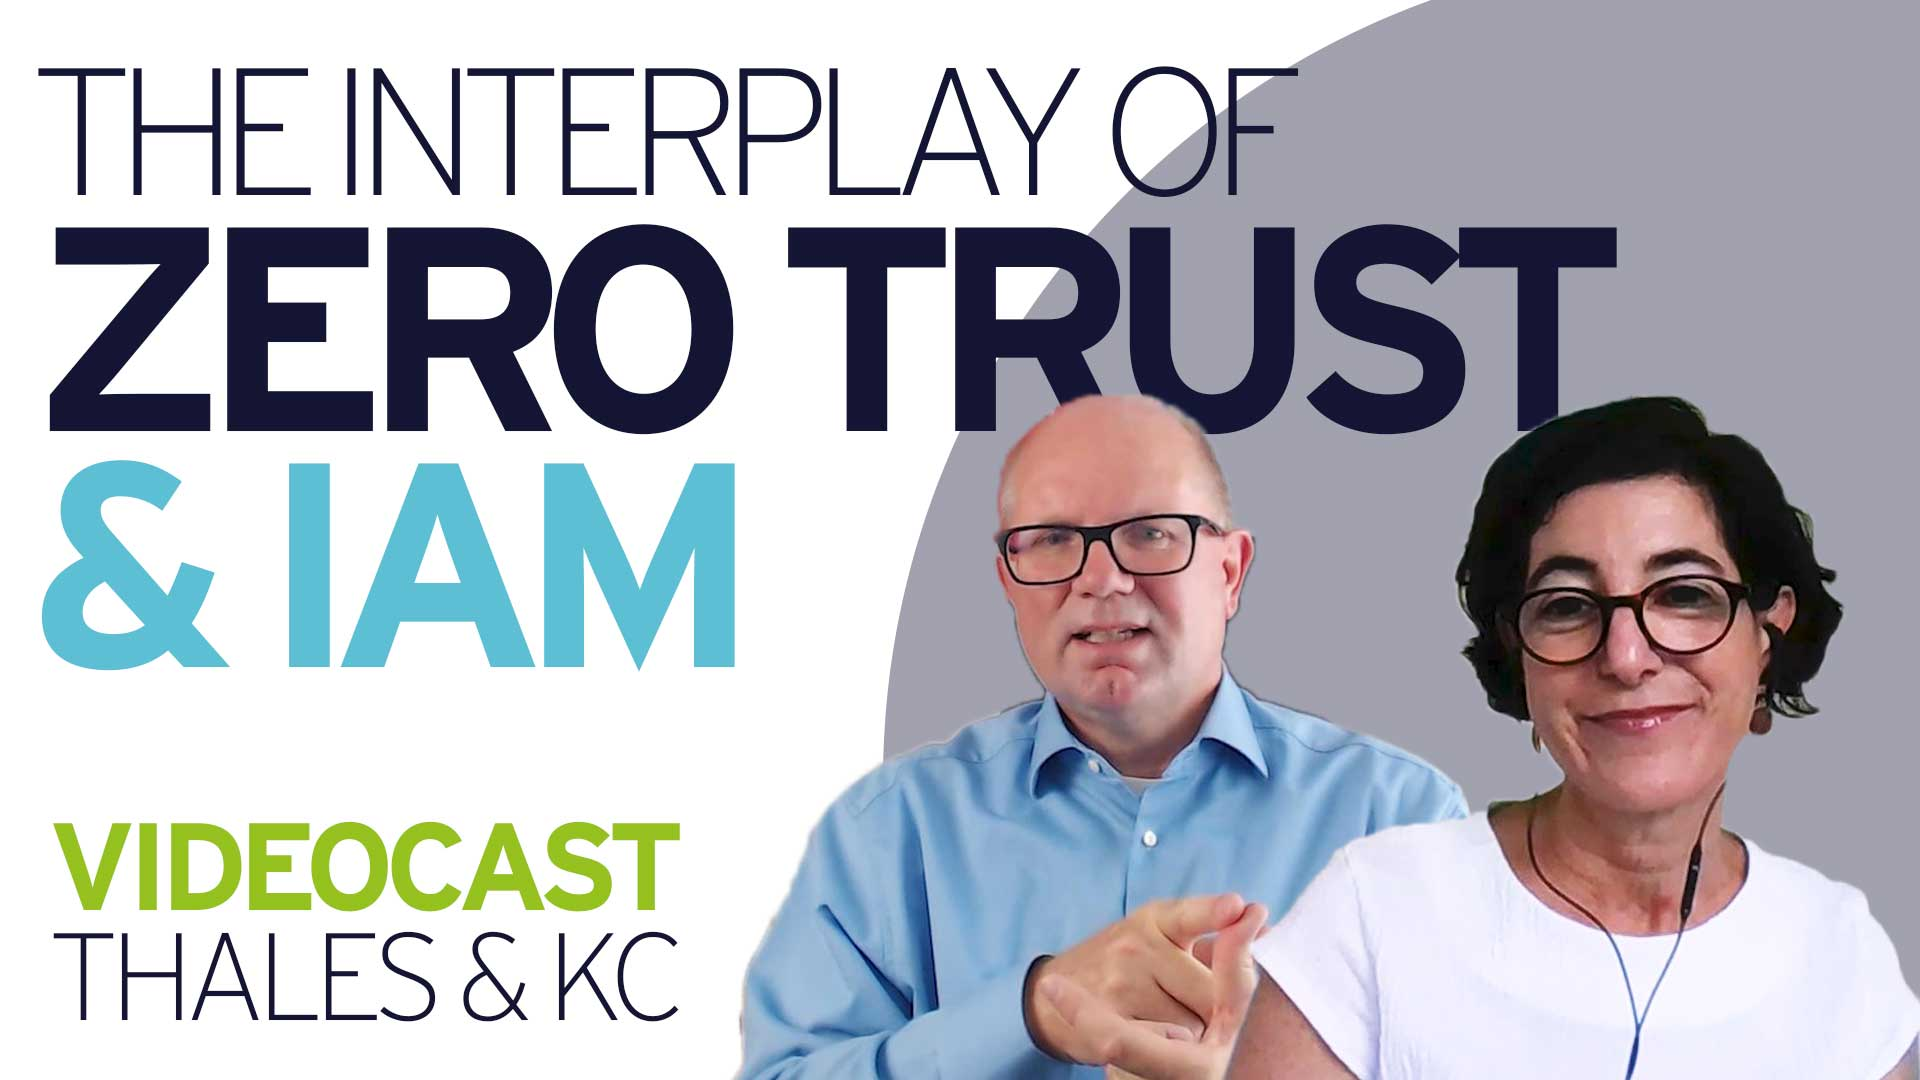 The Interplay between Zero Trust and IAM